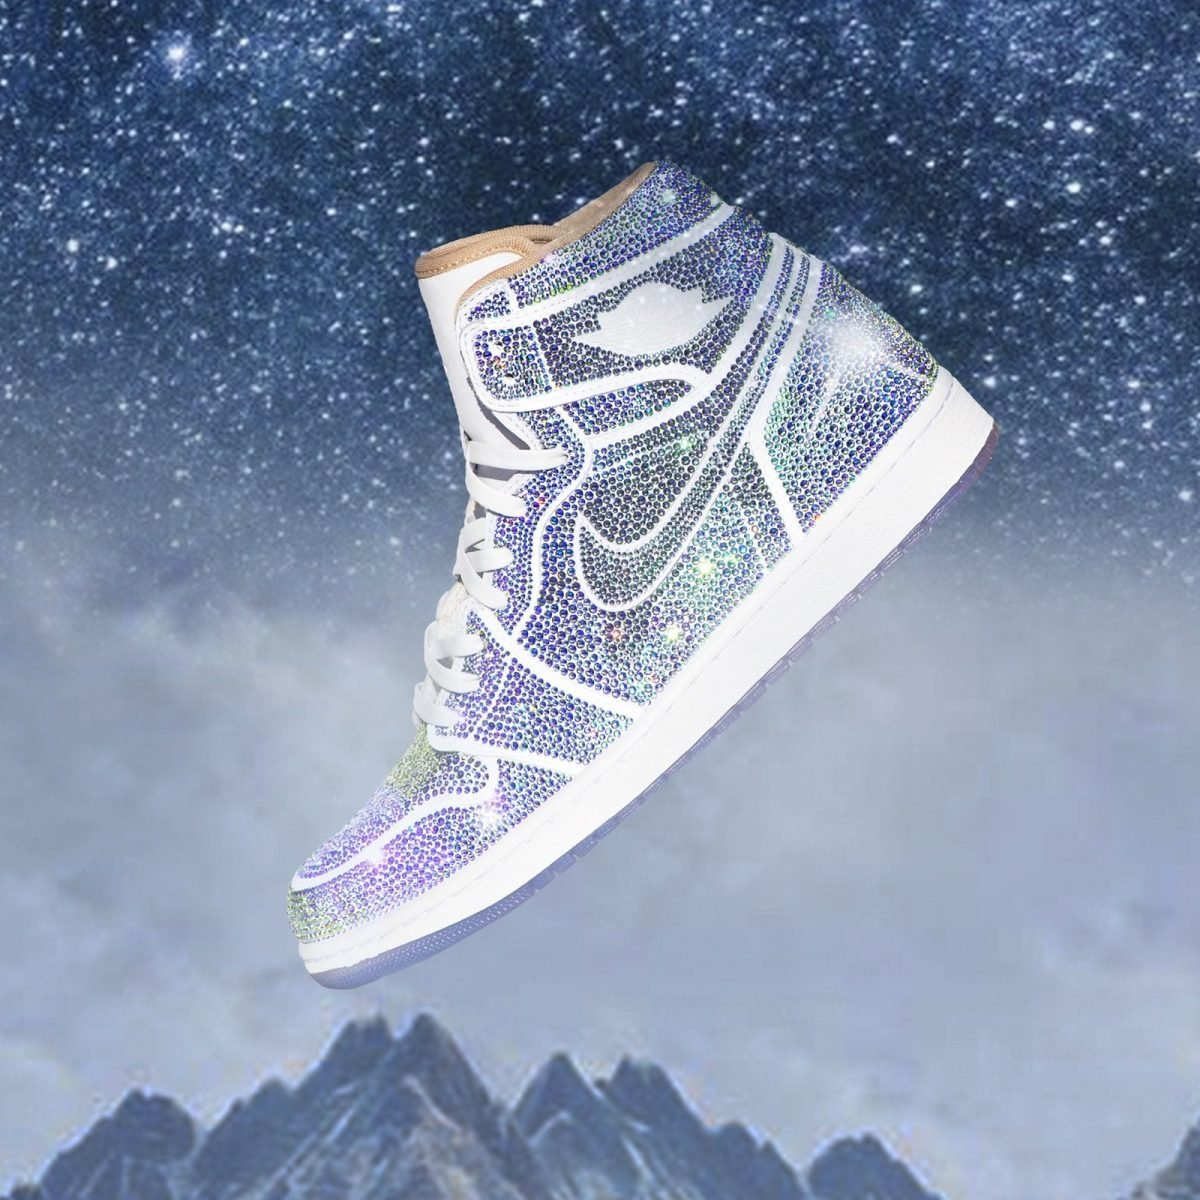 Dan Life Decked-Out an Air Jordan 1 with Over 15,000 Crystals